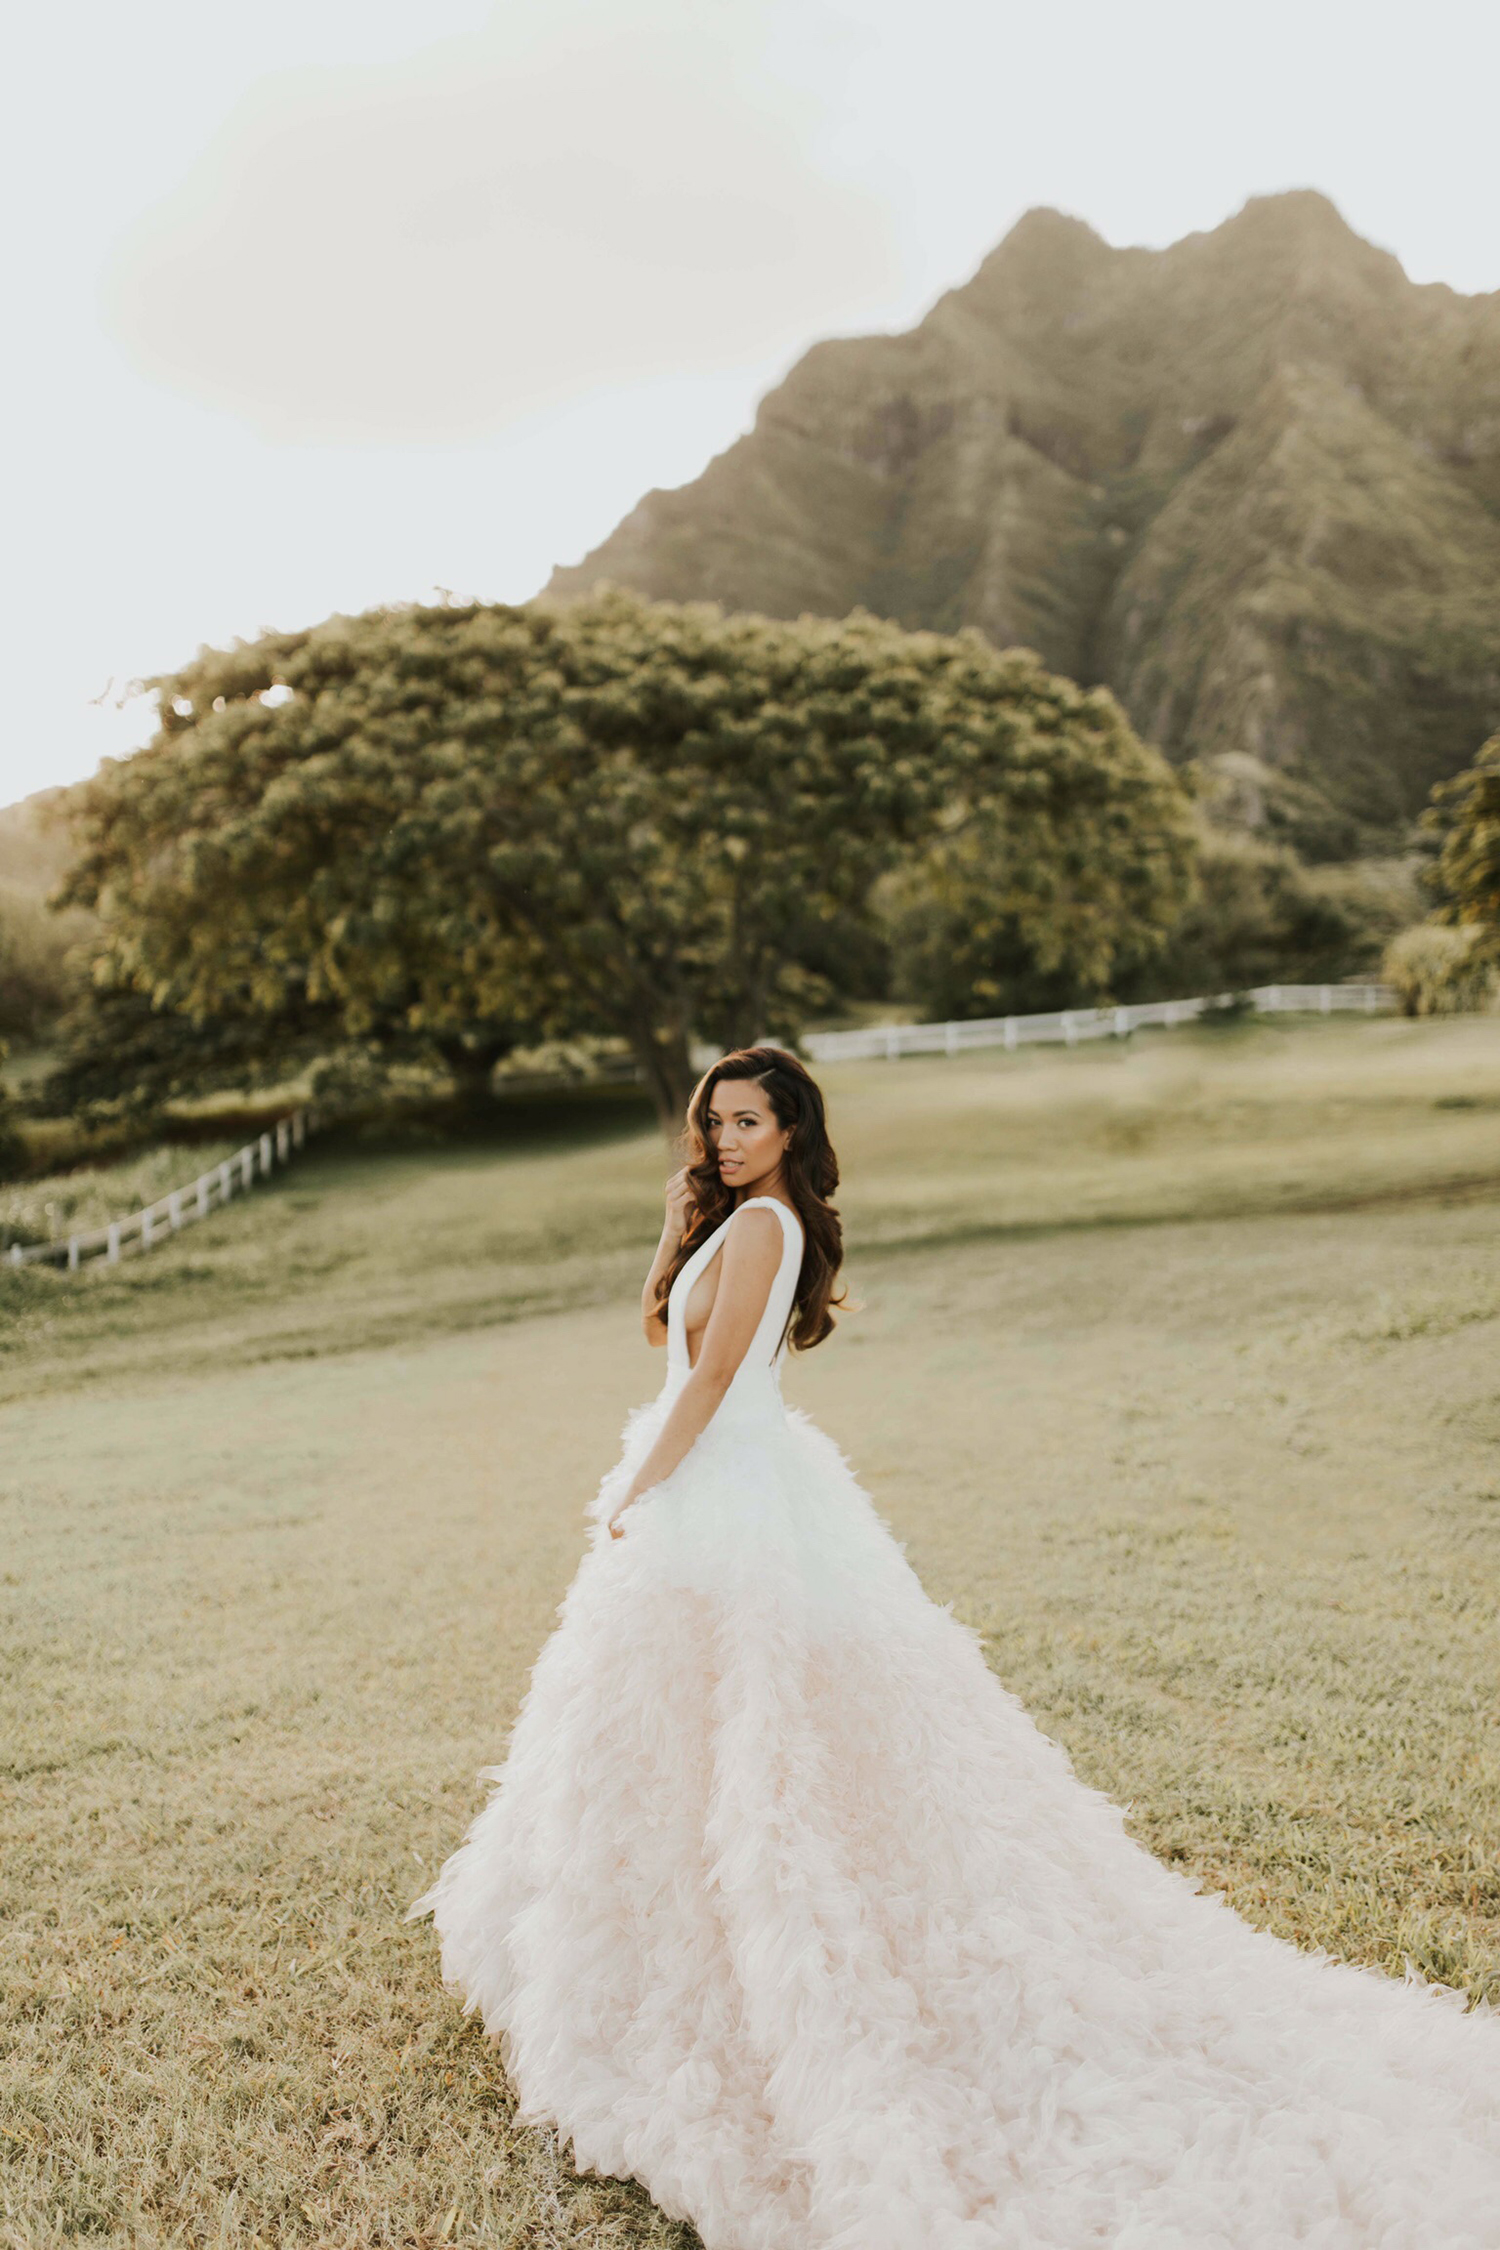 Jessi Malay in Pronovias Wedding Dress